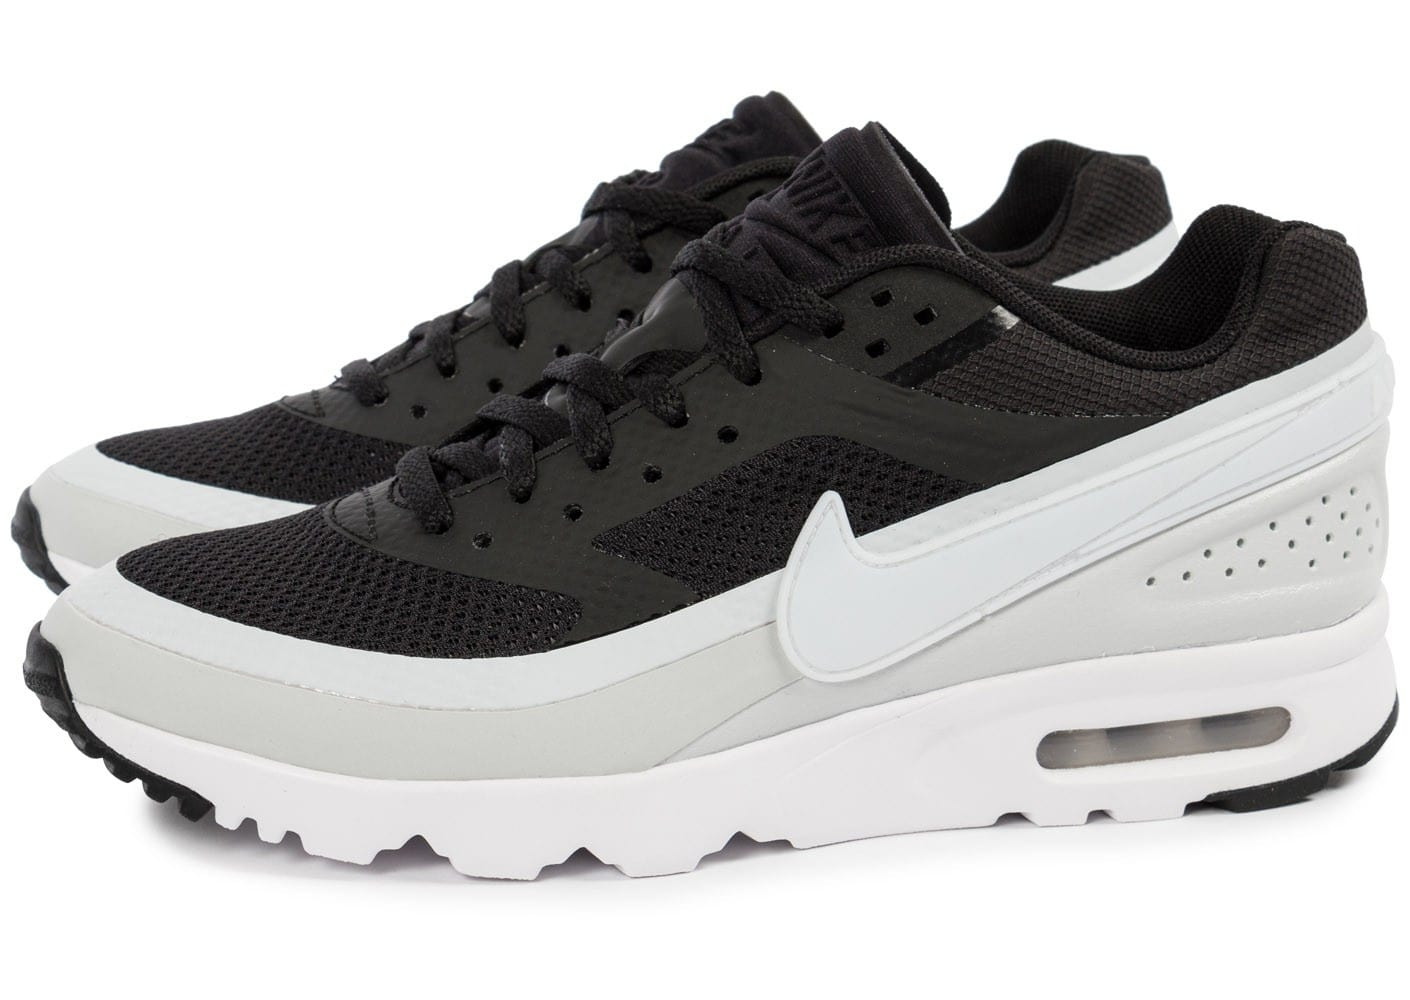 info for 4feee bdfe4 ... Chaussures Nike Air Max BW Ultra W black vue dessous ...